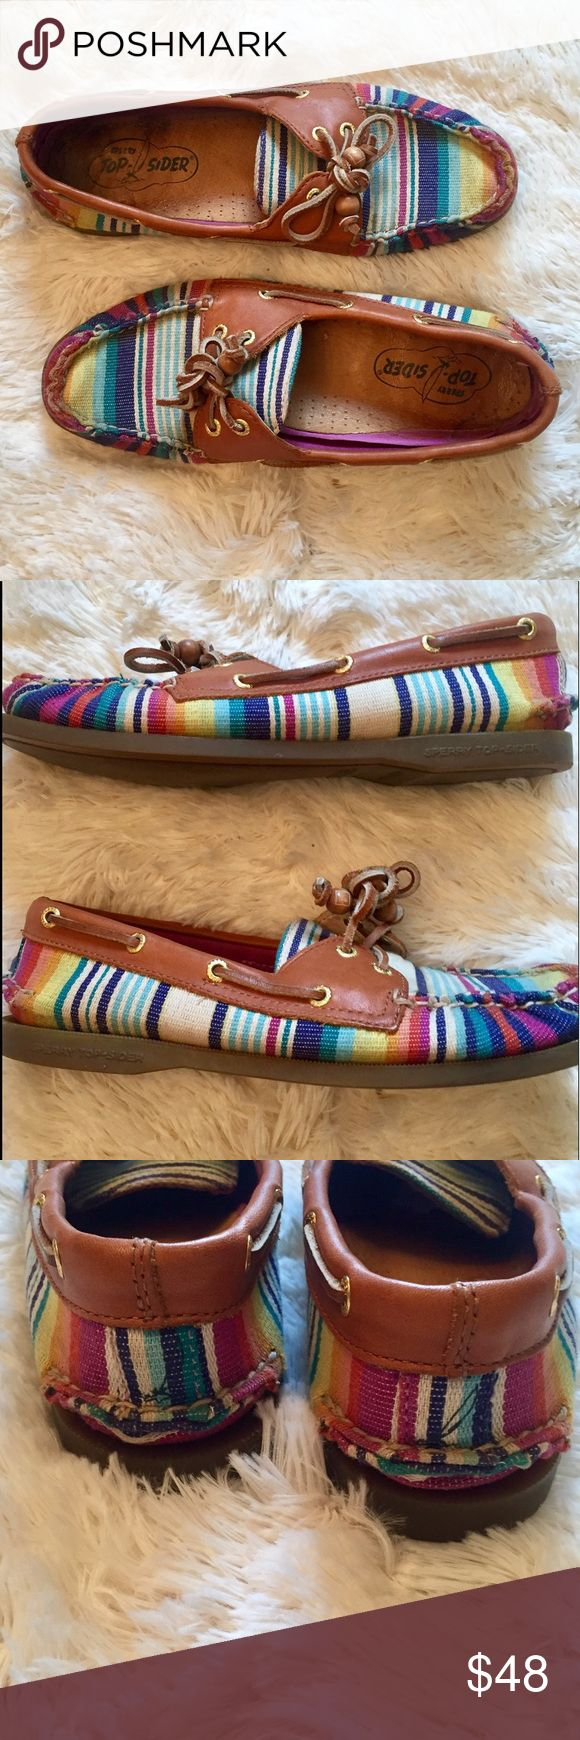 Sperry Top-Sider Rainbow Boat Shoes 7.5 Sperry Top-Sider Rainbow Boat Shoes. In gently used condition. A couple spots could use a bit of a cleaning but they are in great shape! So cute with skinny jeans, shorts, or even yogas. These are comfortable and trendy. Size is 7.5. Reasonable offers always welcome! 🙂 Sperry Top-Sider Shoes Flats & Loafers